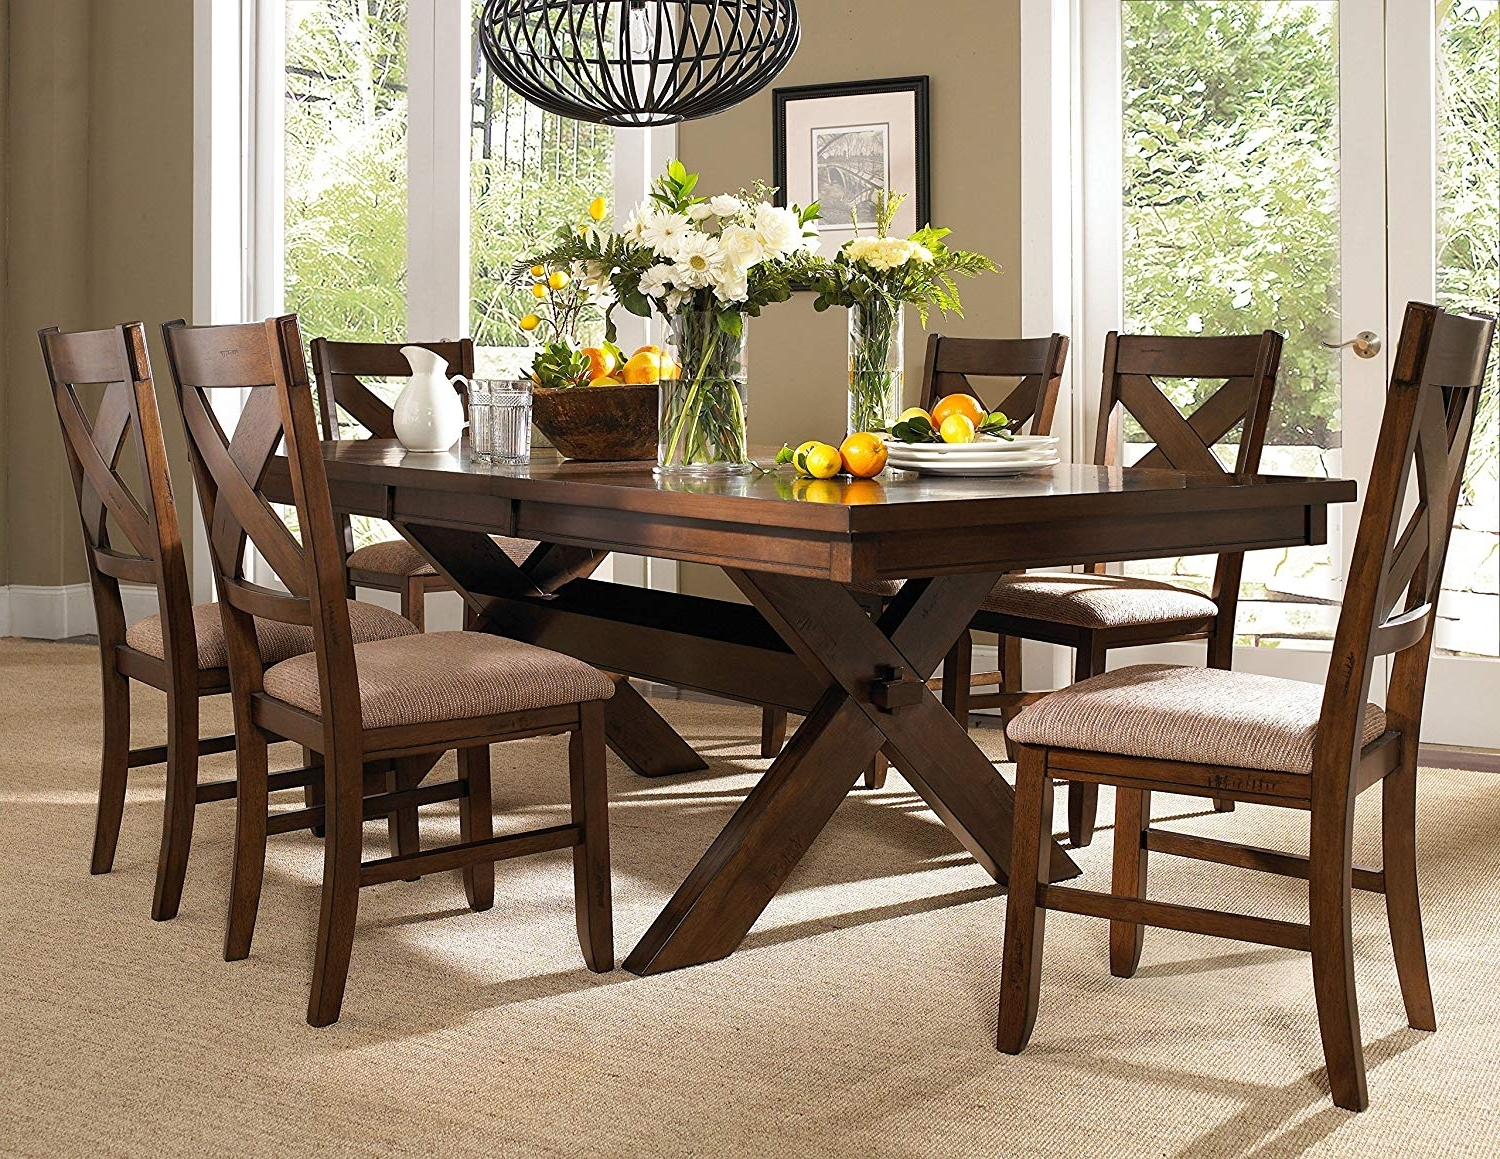 Dining Tables With 6 Chairs Inside Famous Amazon – Powell 713 417M2 7 Piece Wooden Kraven Dining Set (View 8 of 25)